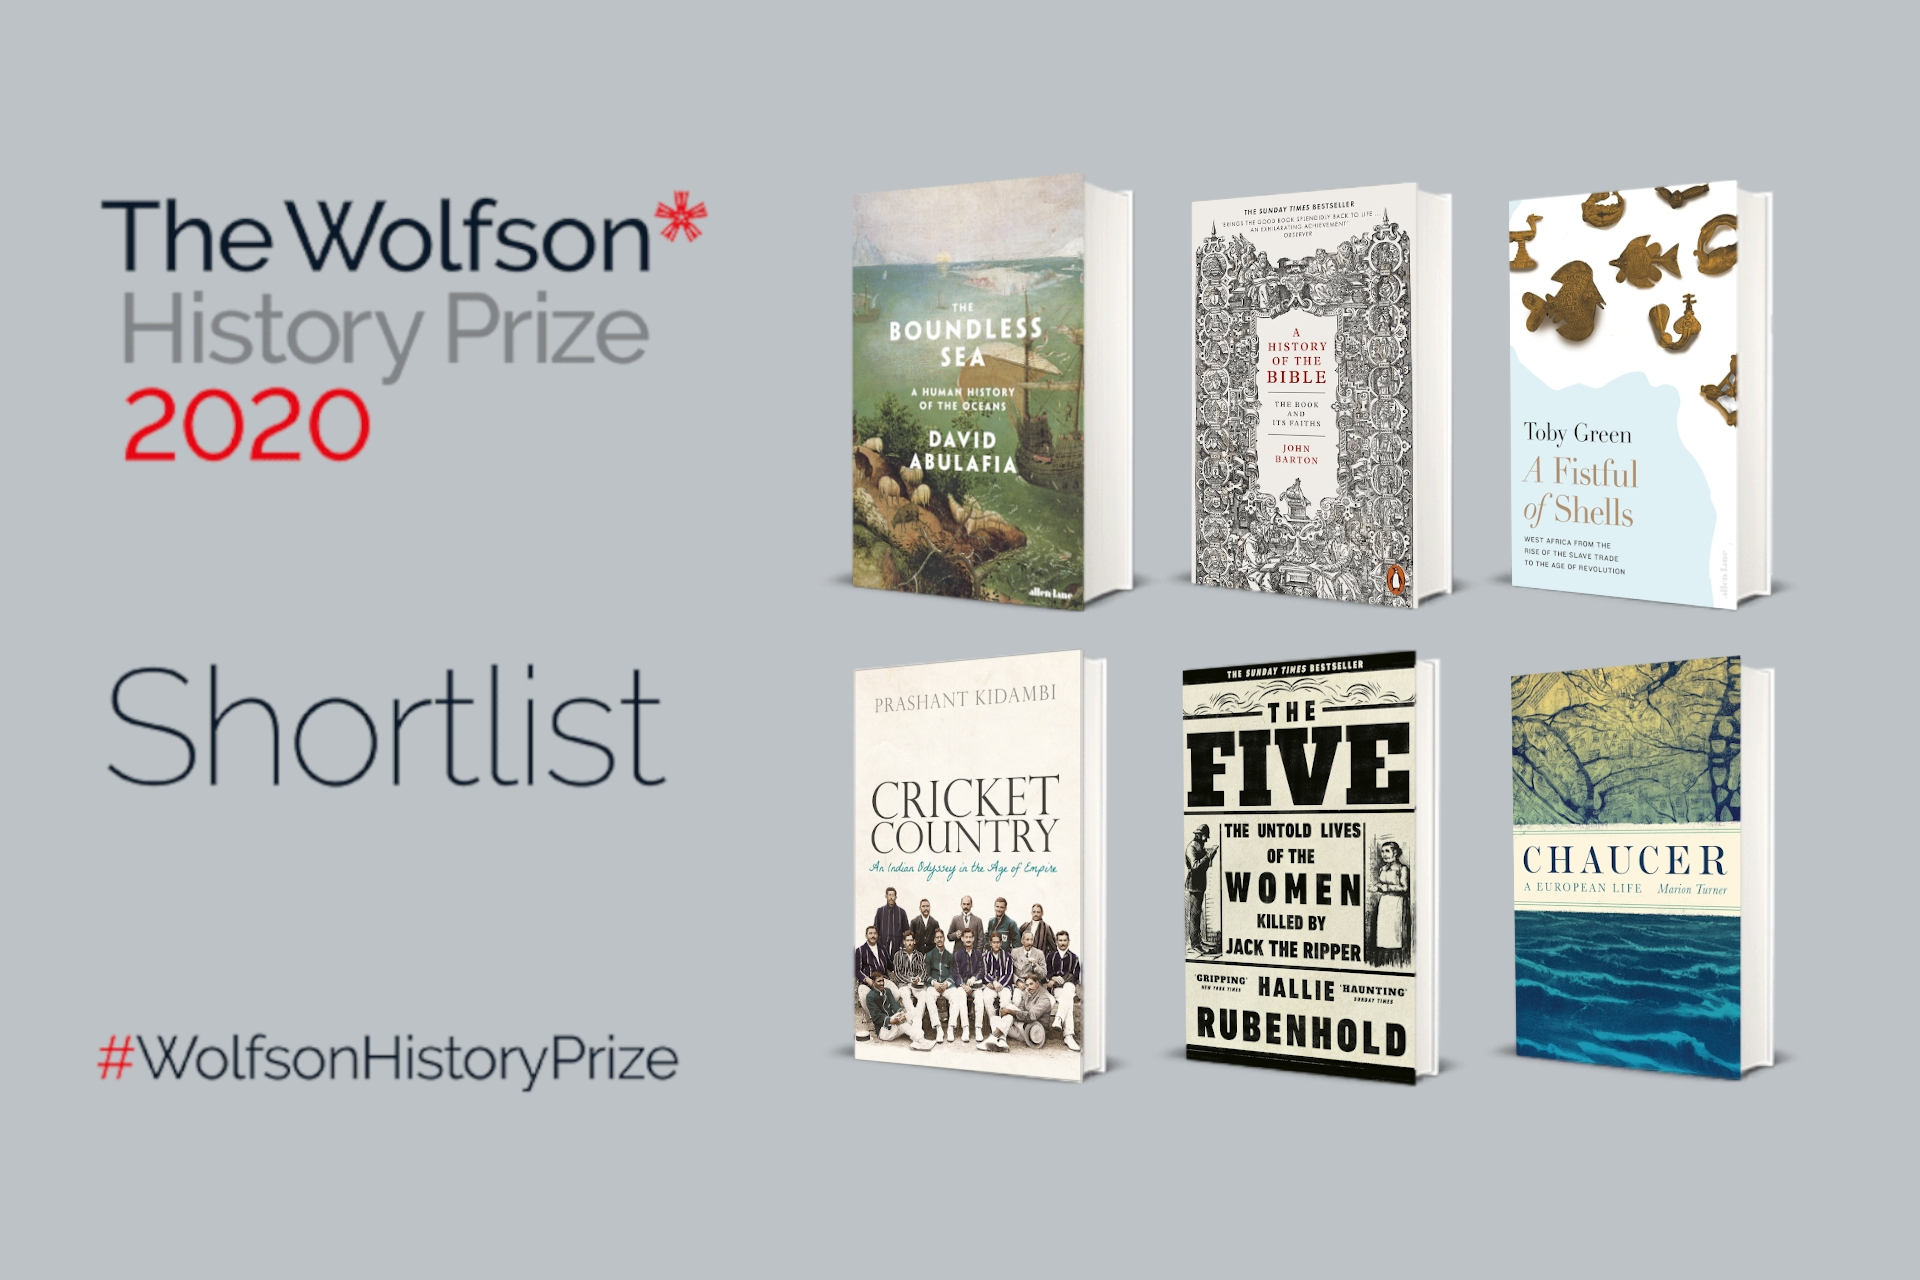 The Wolfson History Prize